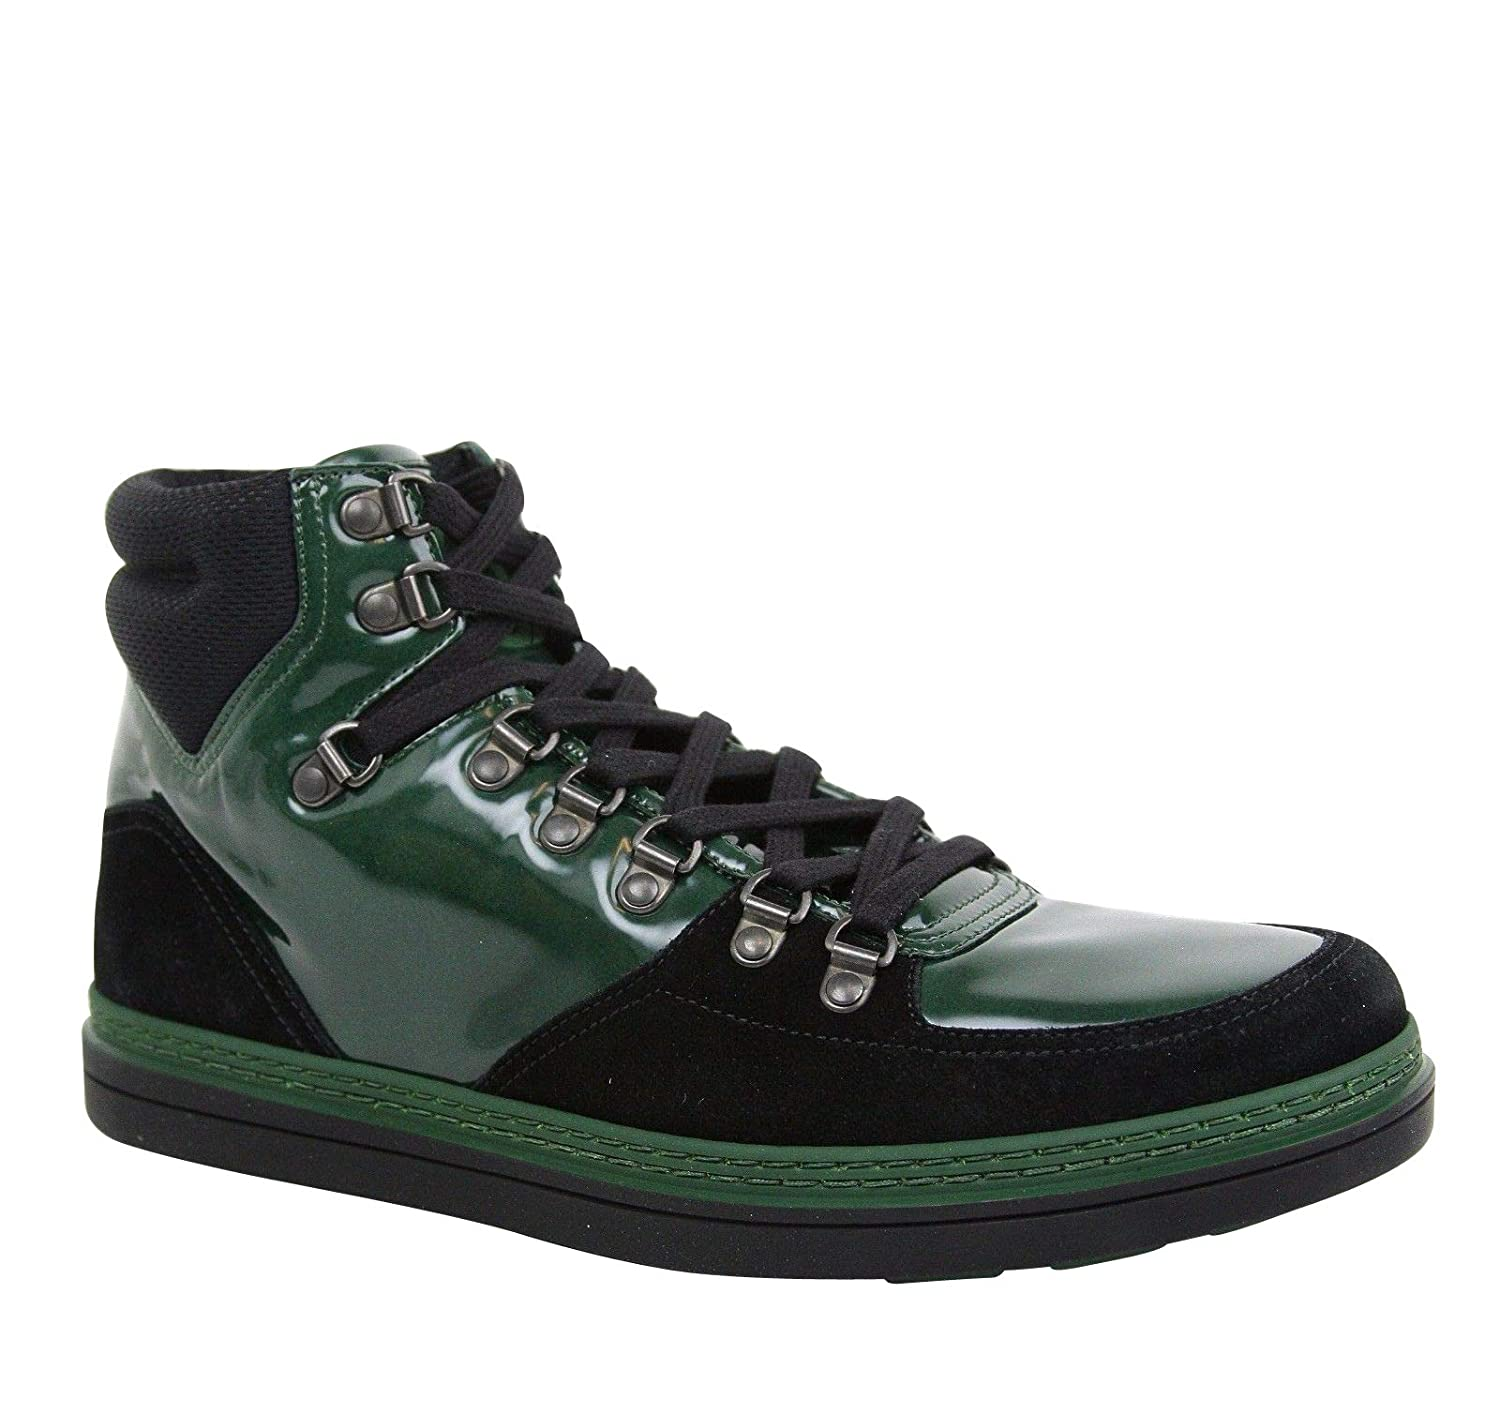 268cb927cff Amazon.com  Gucci Contrast Combo High top Dark Green Suede Leather Sneaker  368496 1077  Shoes